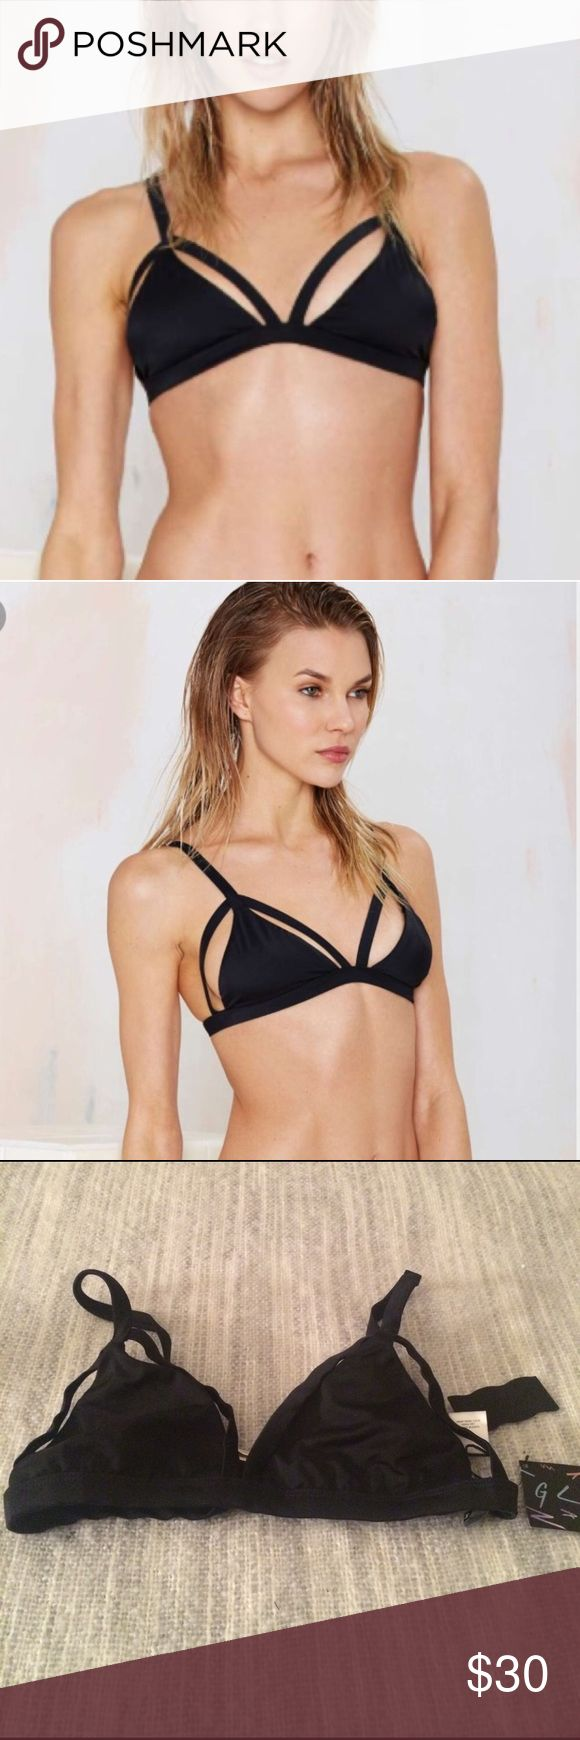 Spotted while shopping on Poshmark: Nasty Gal bikini top! #poshmark #fashion #shopping #style #Nasty Gal #Other